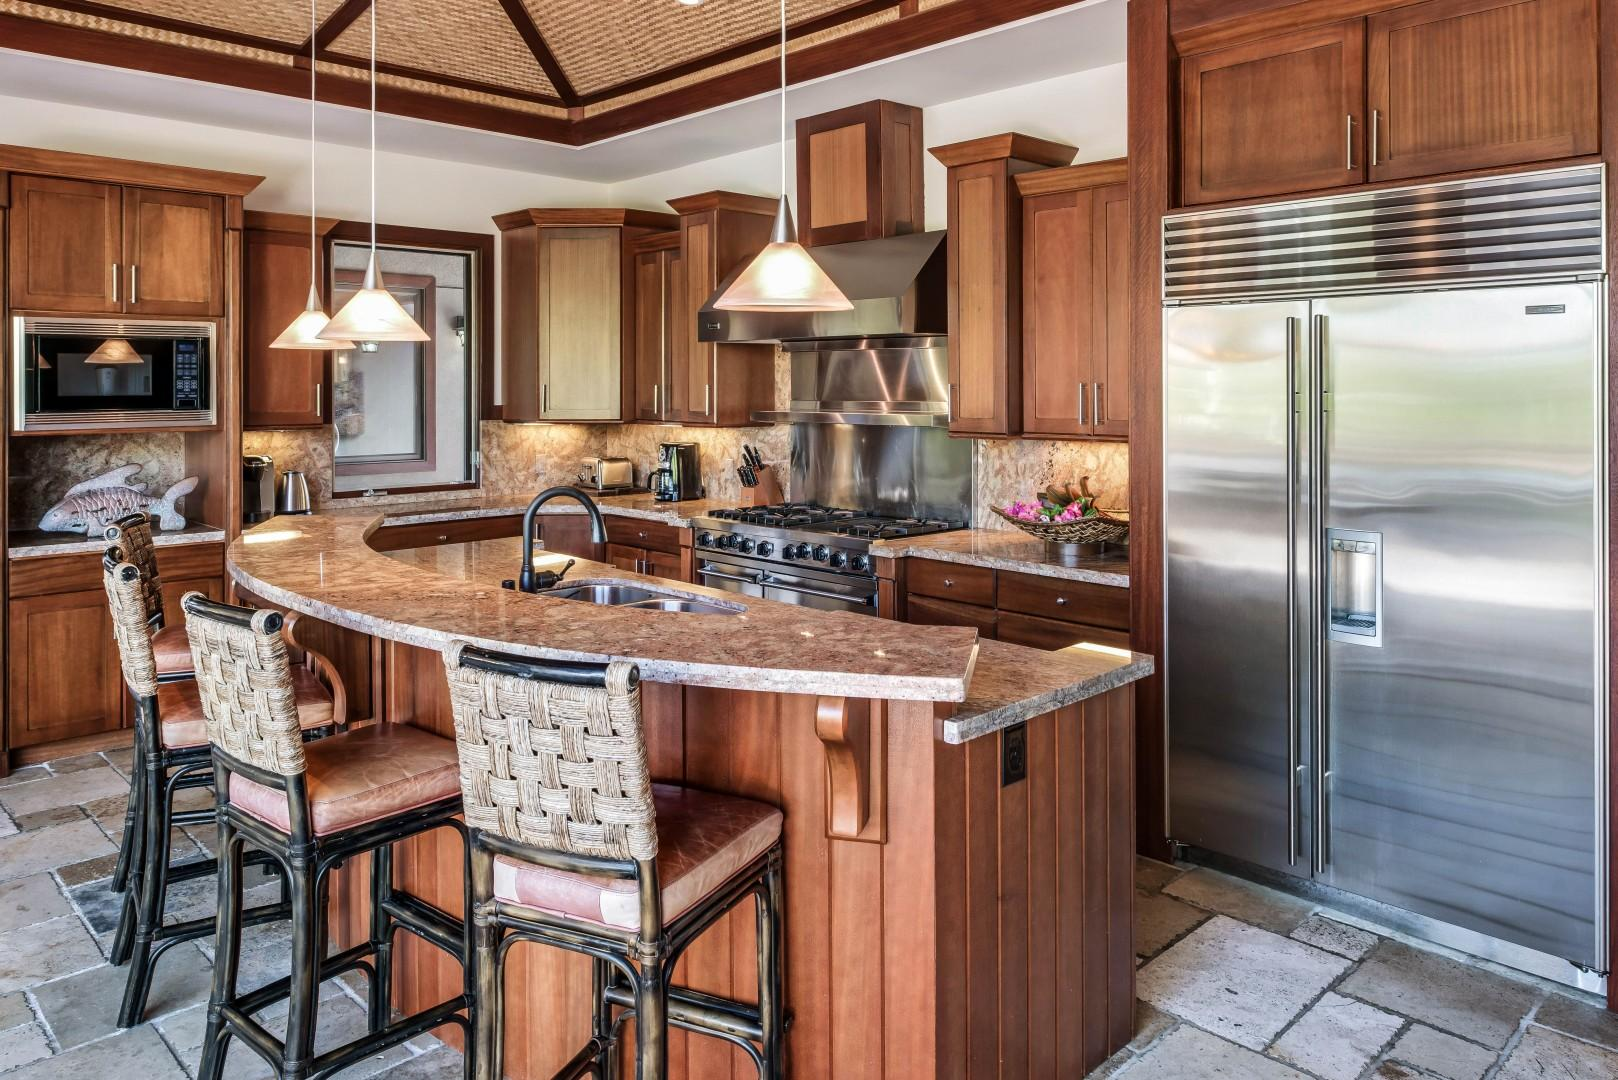 Gourmet Kitchen Designed for Cooking and Entertaining